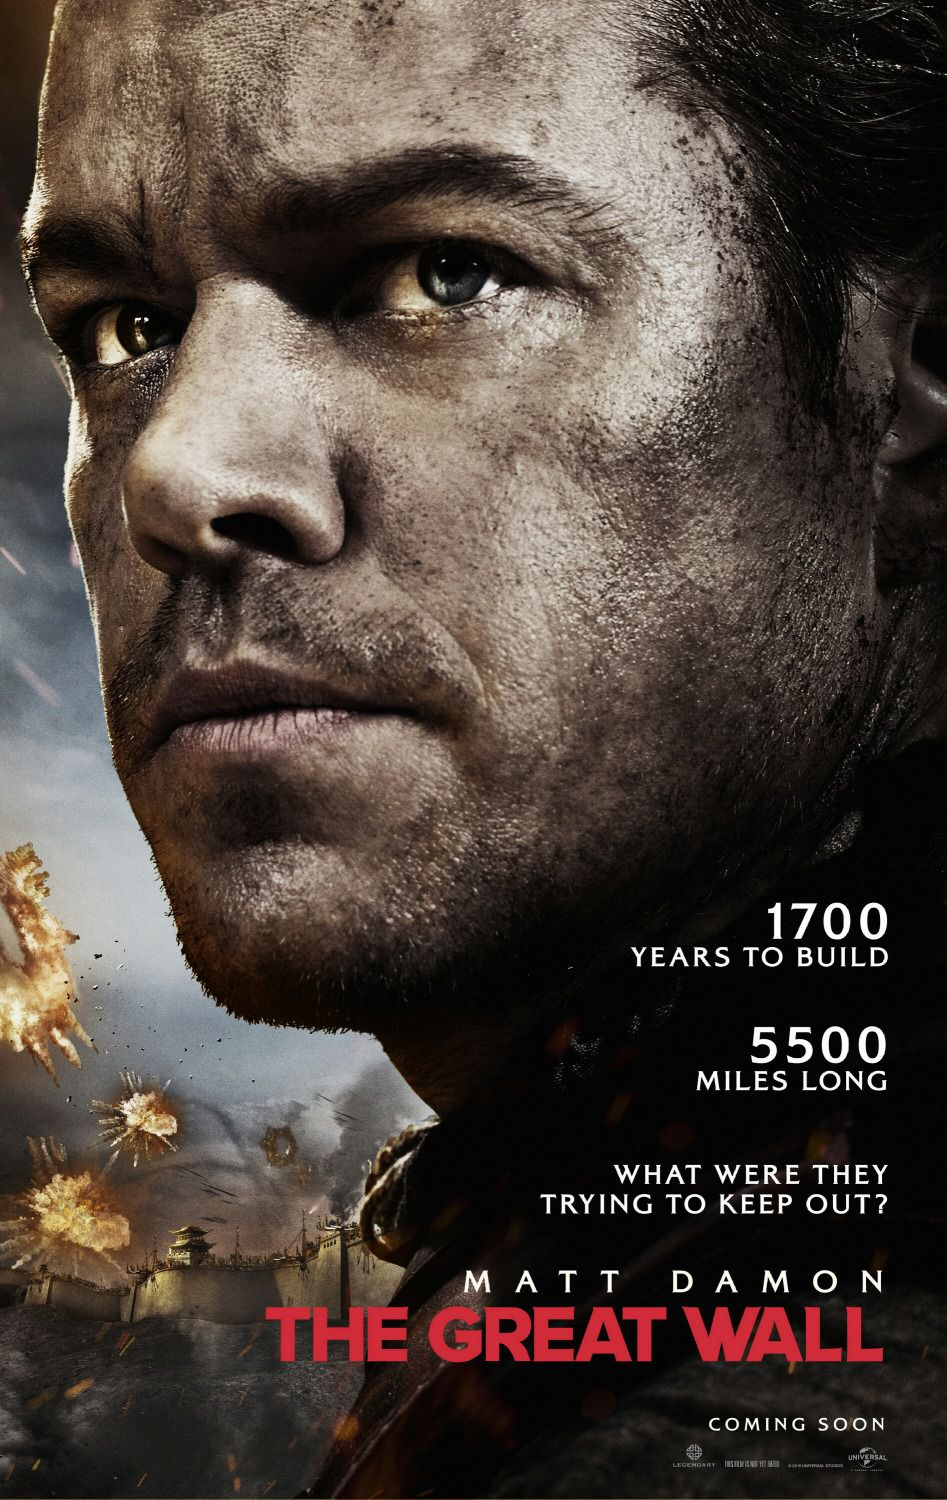 The Great Wall - film poster - Matt Damon